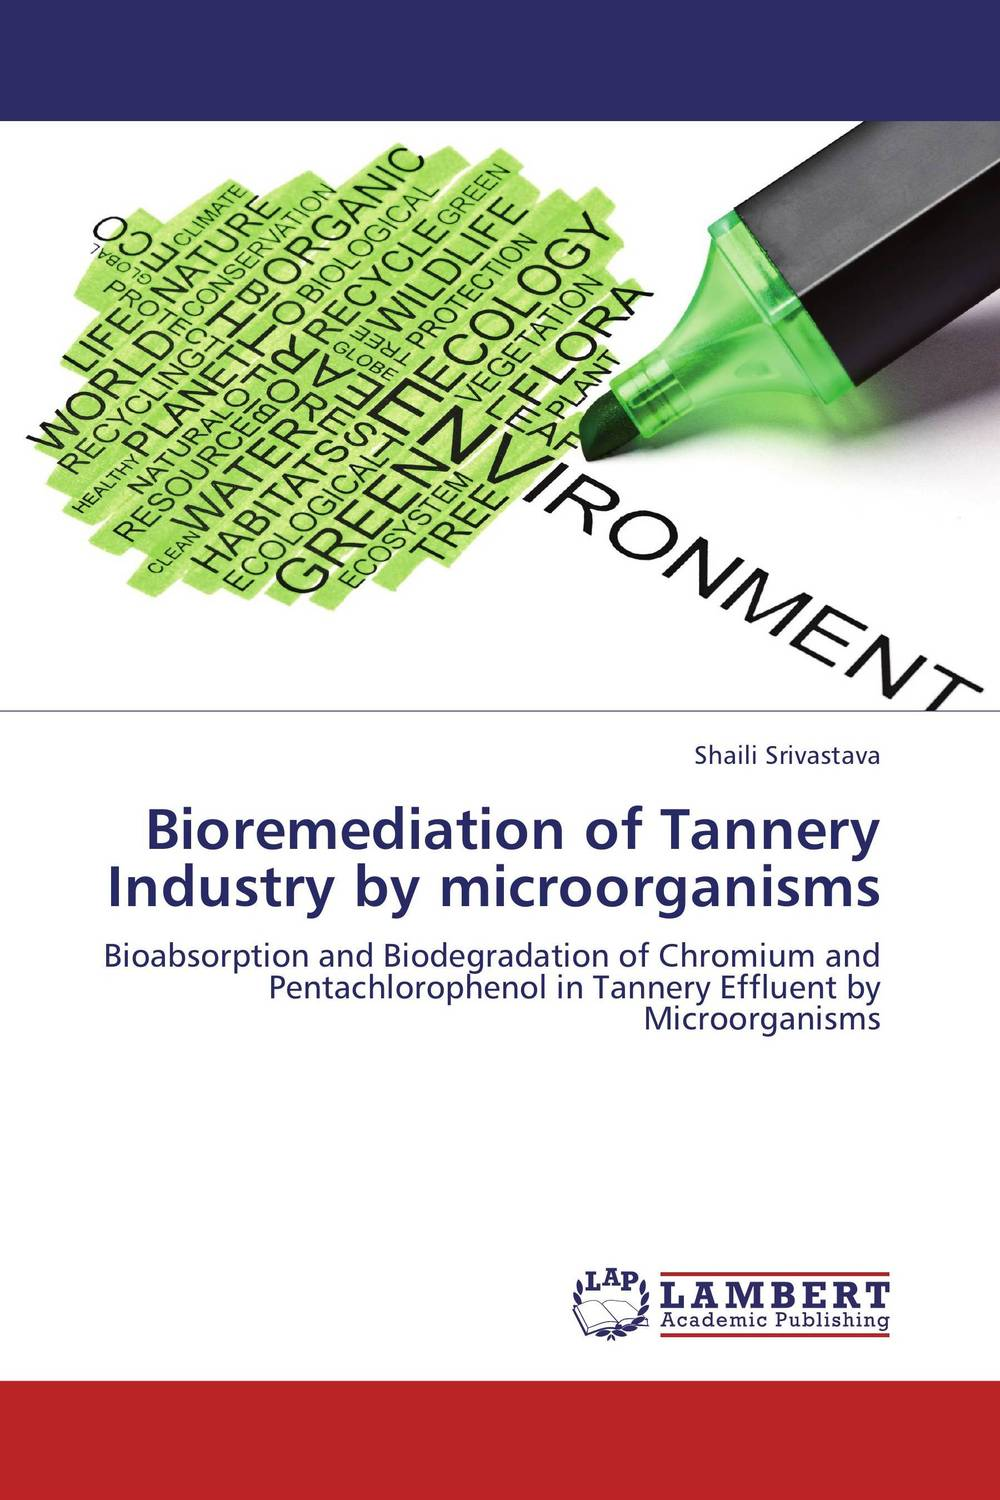 Bioremediation of Tannery Industry by microorganisms adding value to the citrus pulp by enzyme biotechnology production